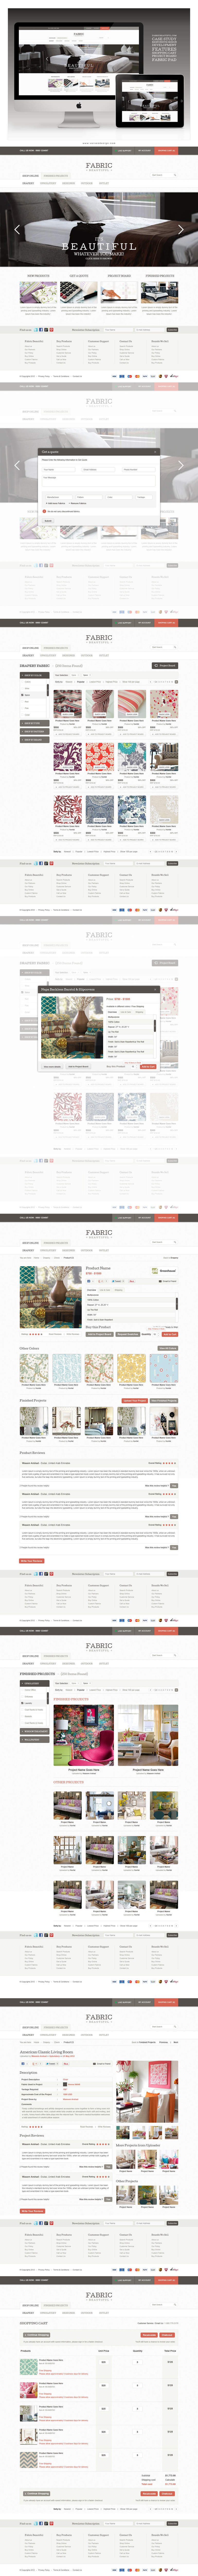 Fabric Beautiful (Online Shopping Store) by waseemarshad